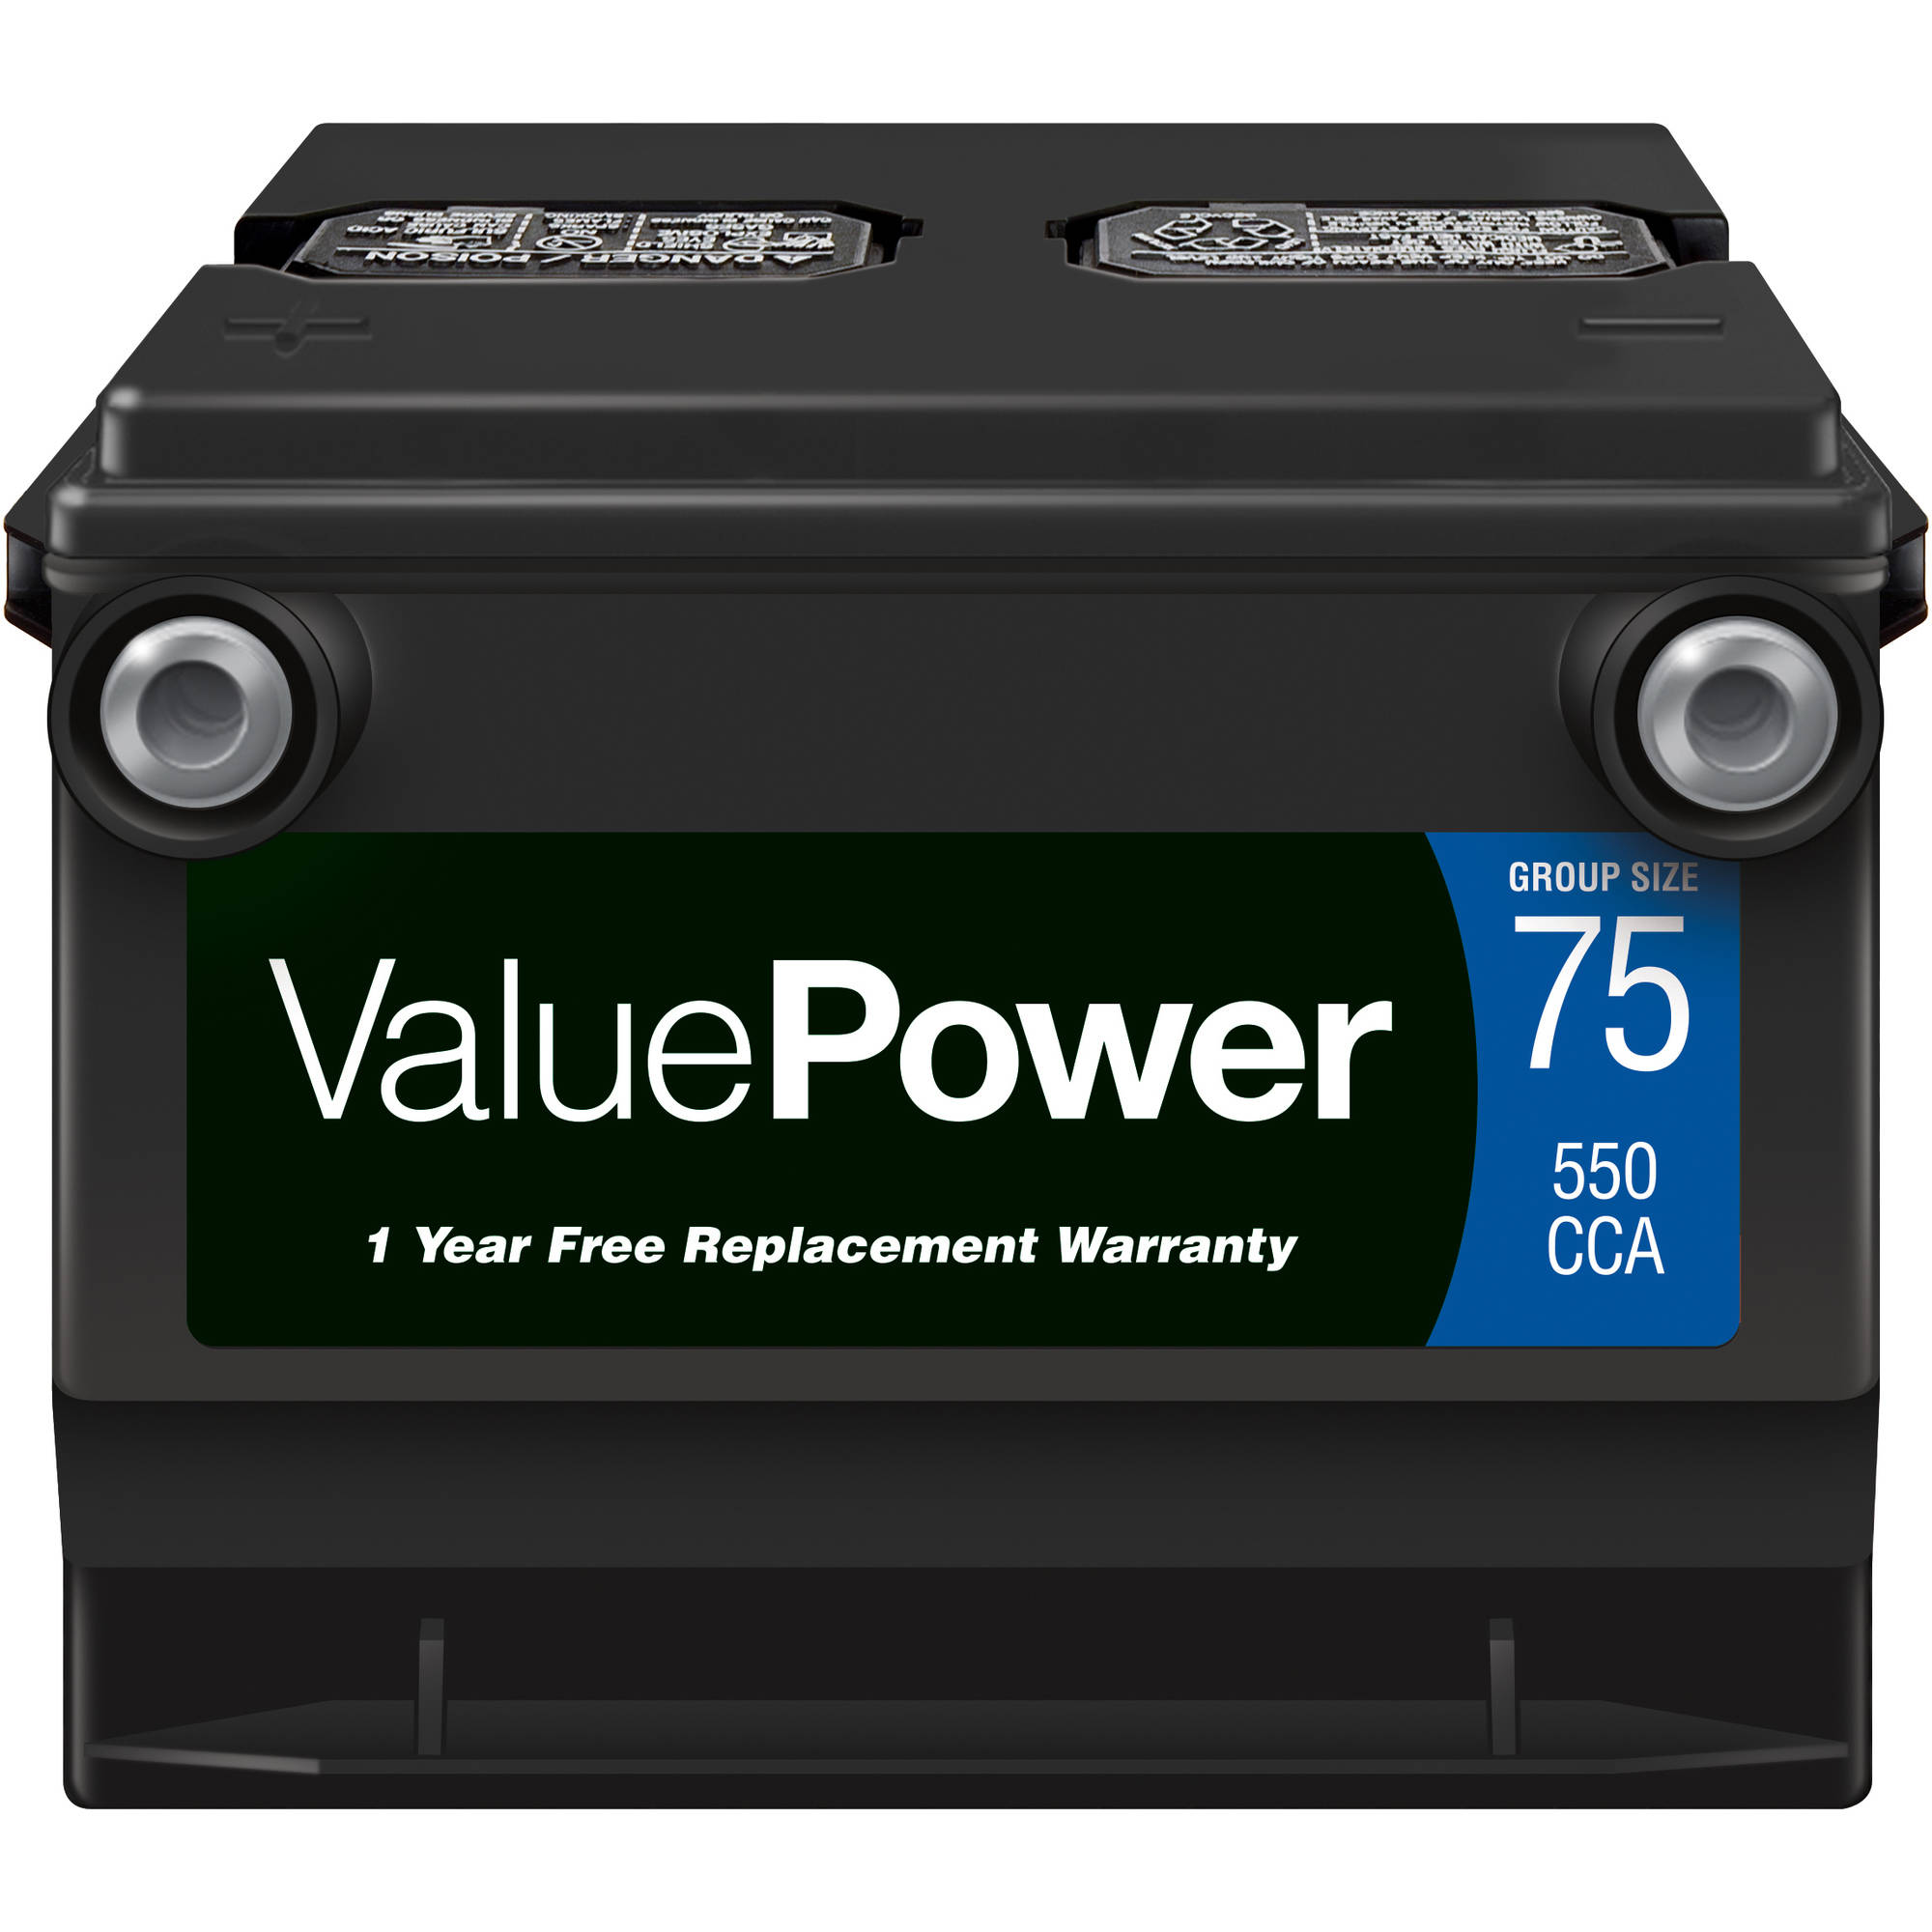 Valuepower lead acid automotive battery group 75 walmart fandeluxe Image collections